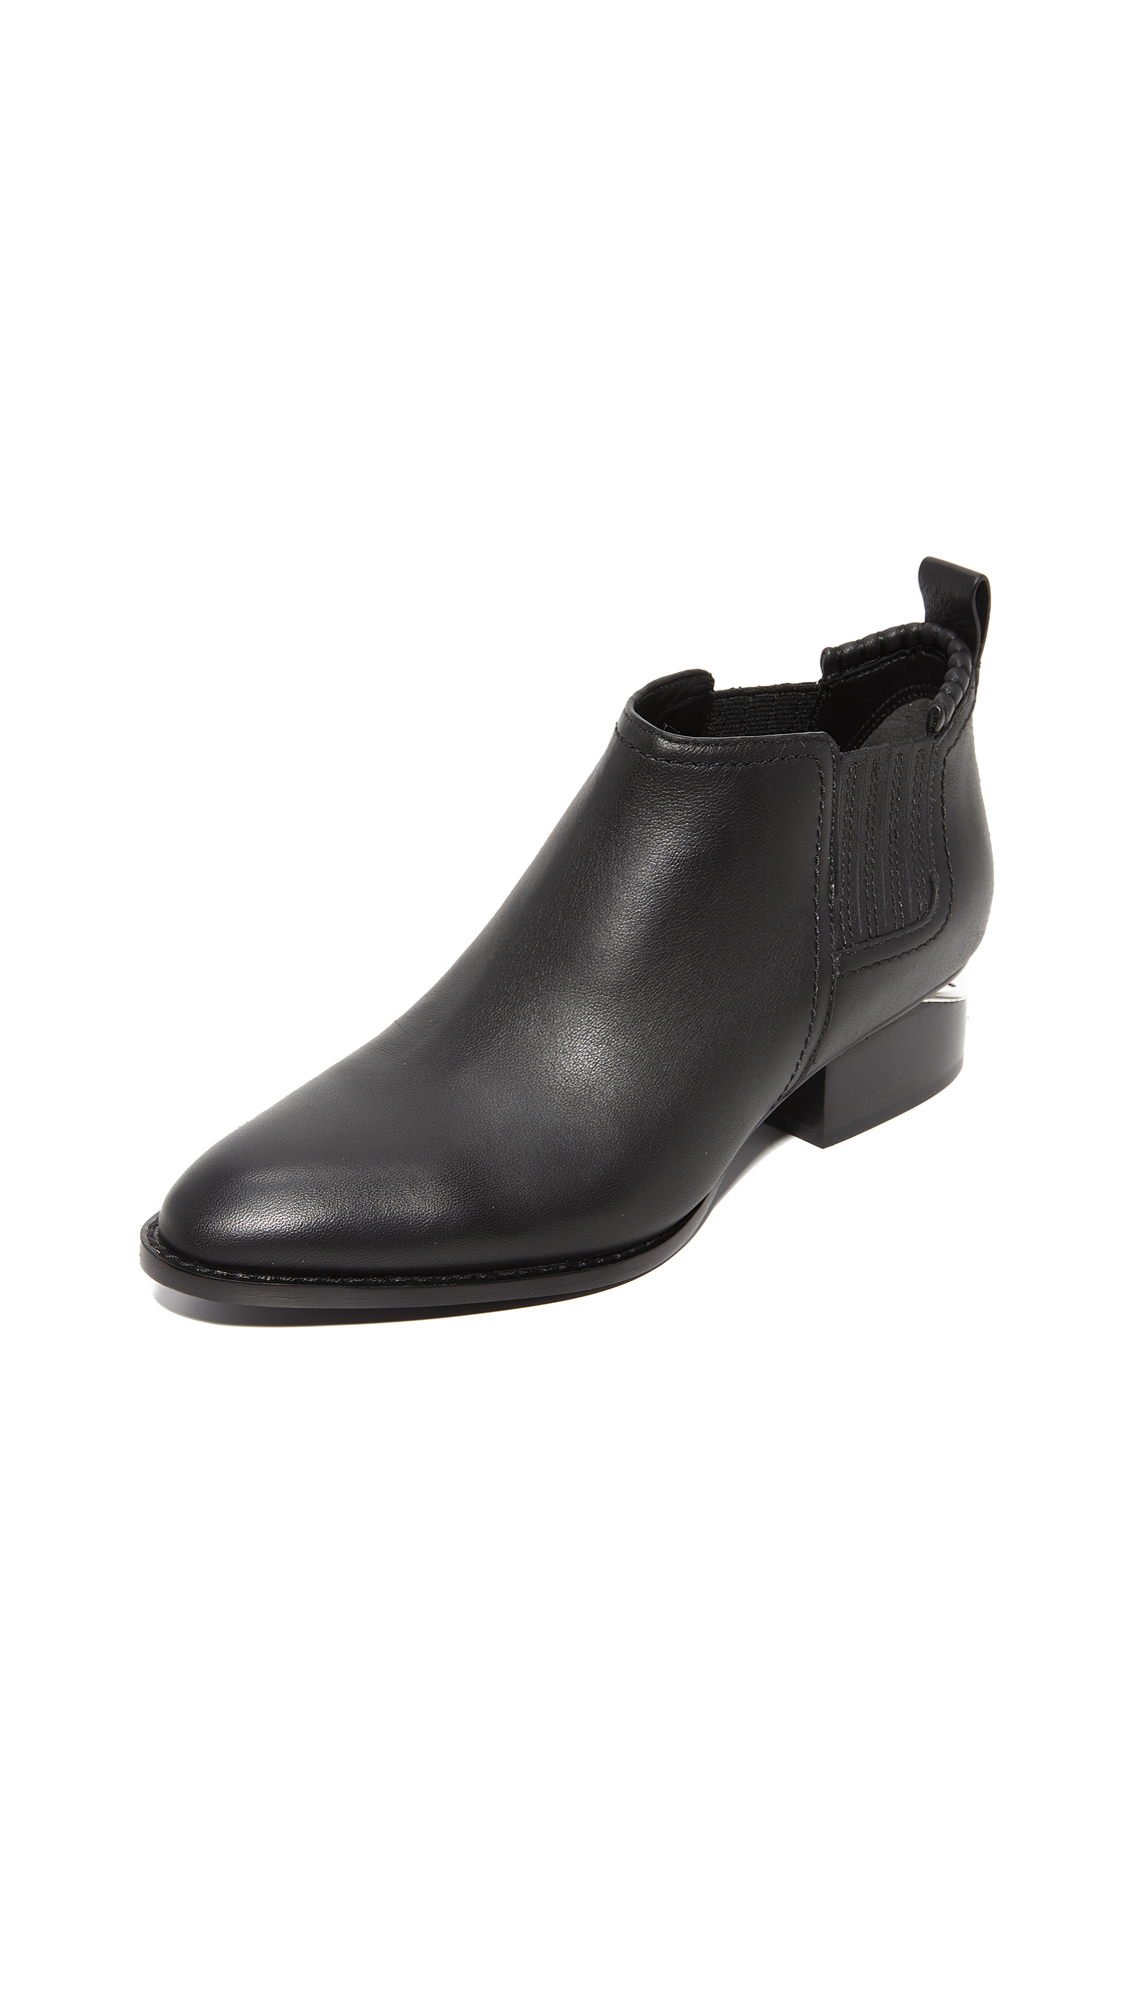 Alexander Wang Kori Ankle Booties - Black/Rhodium